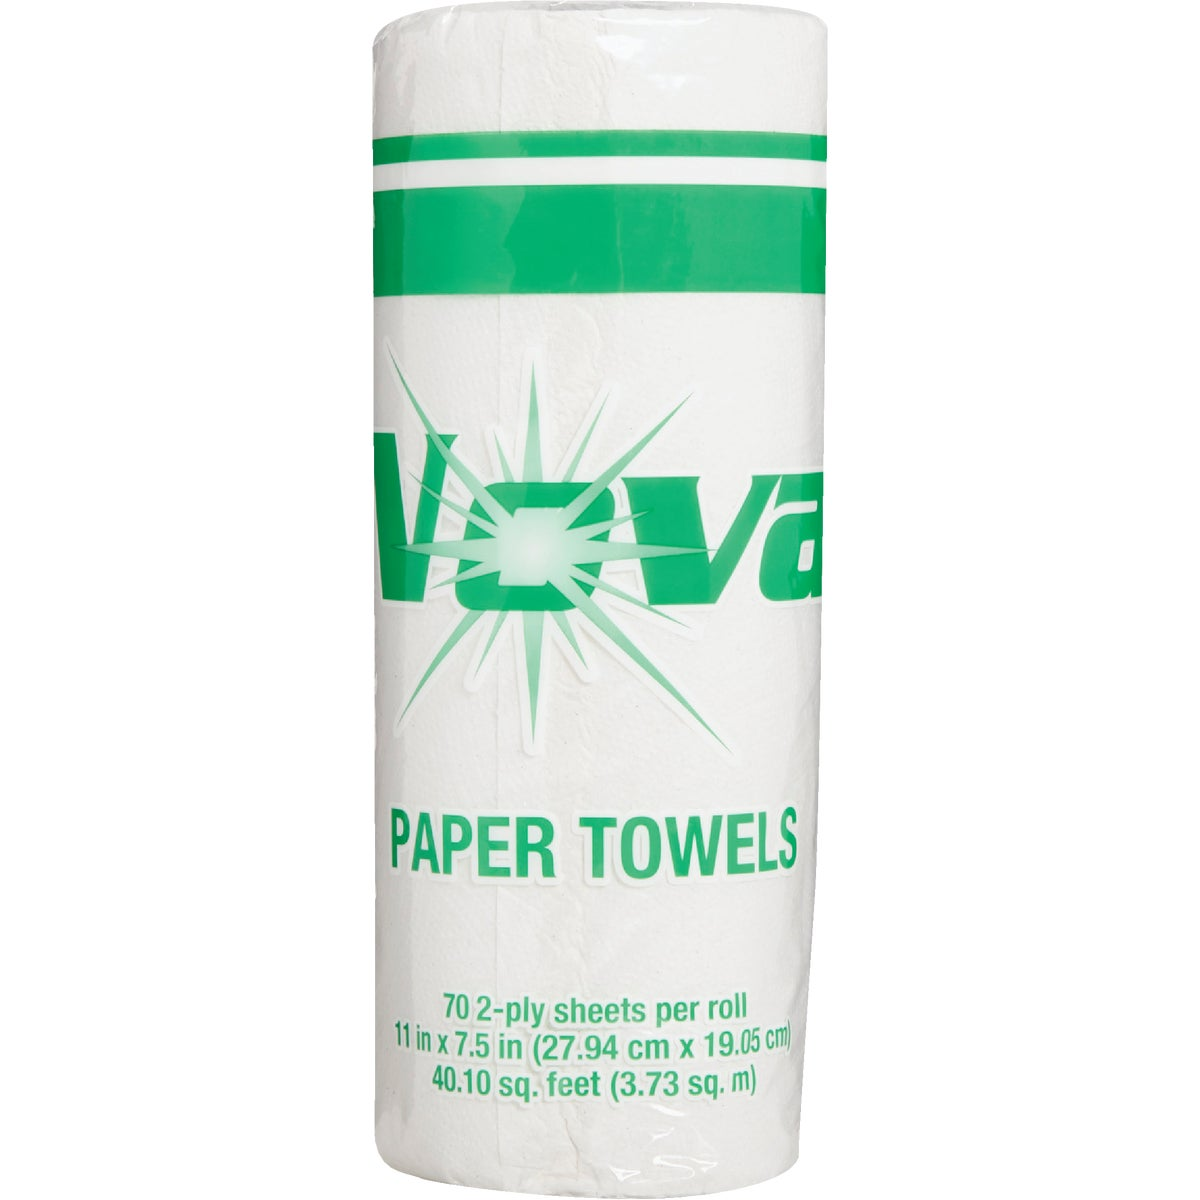 70CT 2-PLY PAPER TOWEL - 40700 by Bunzl USA